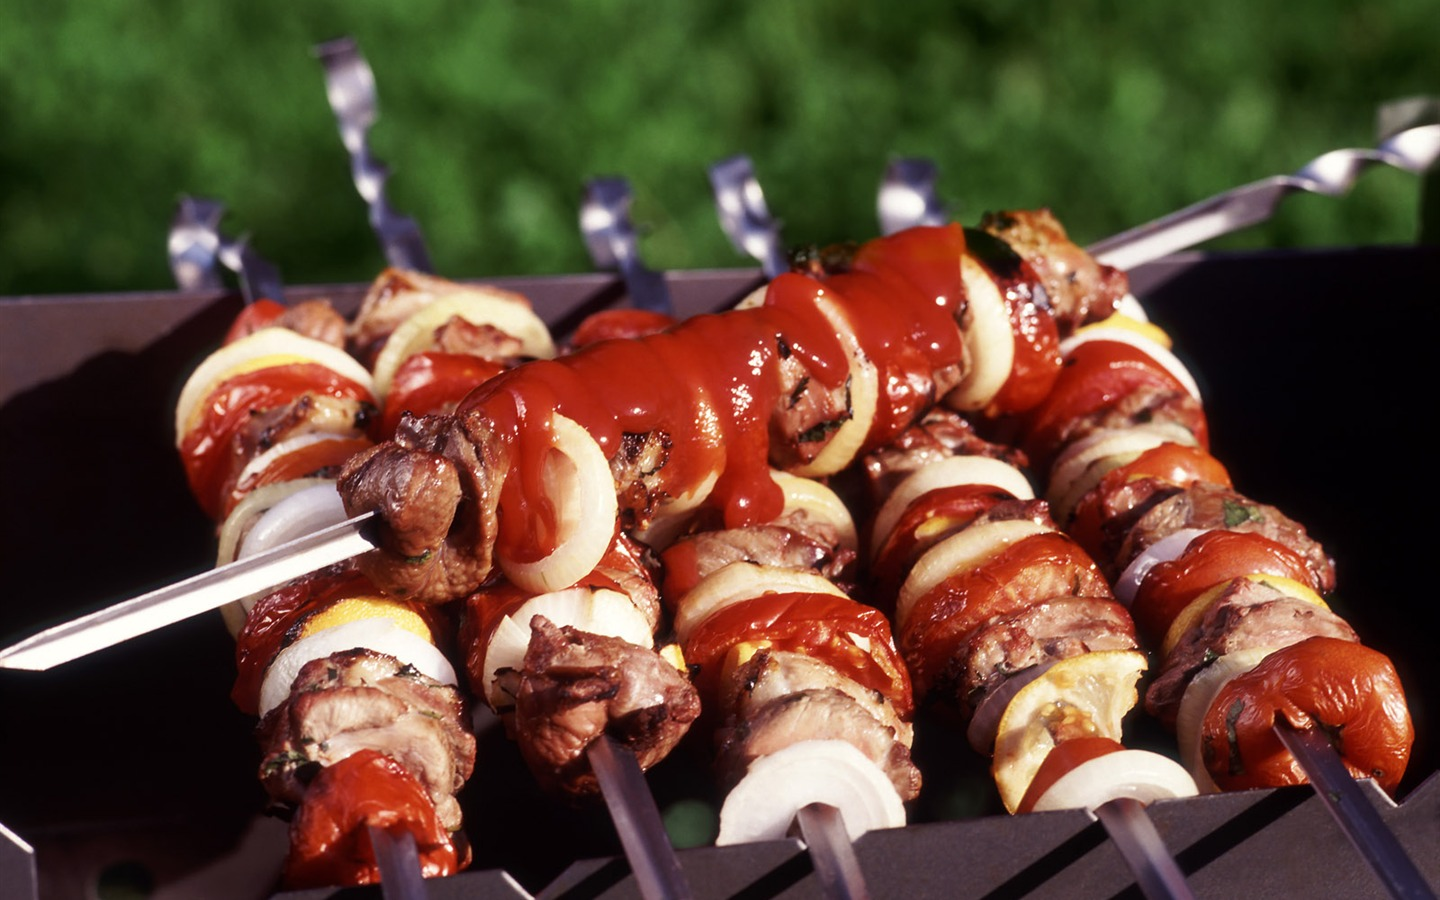 Delicious barbecue wallpaper (4) #9 - 1440x900